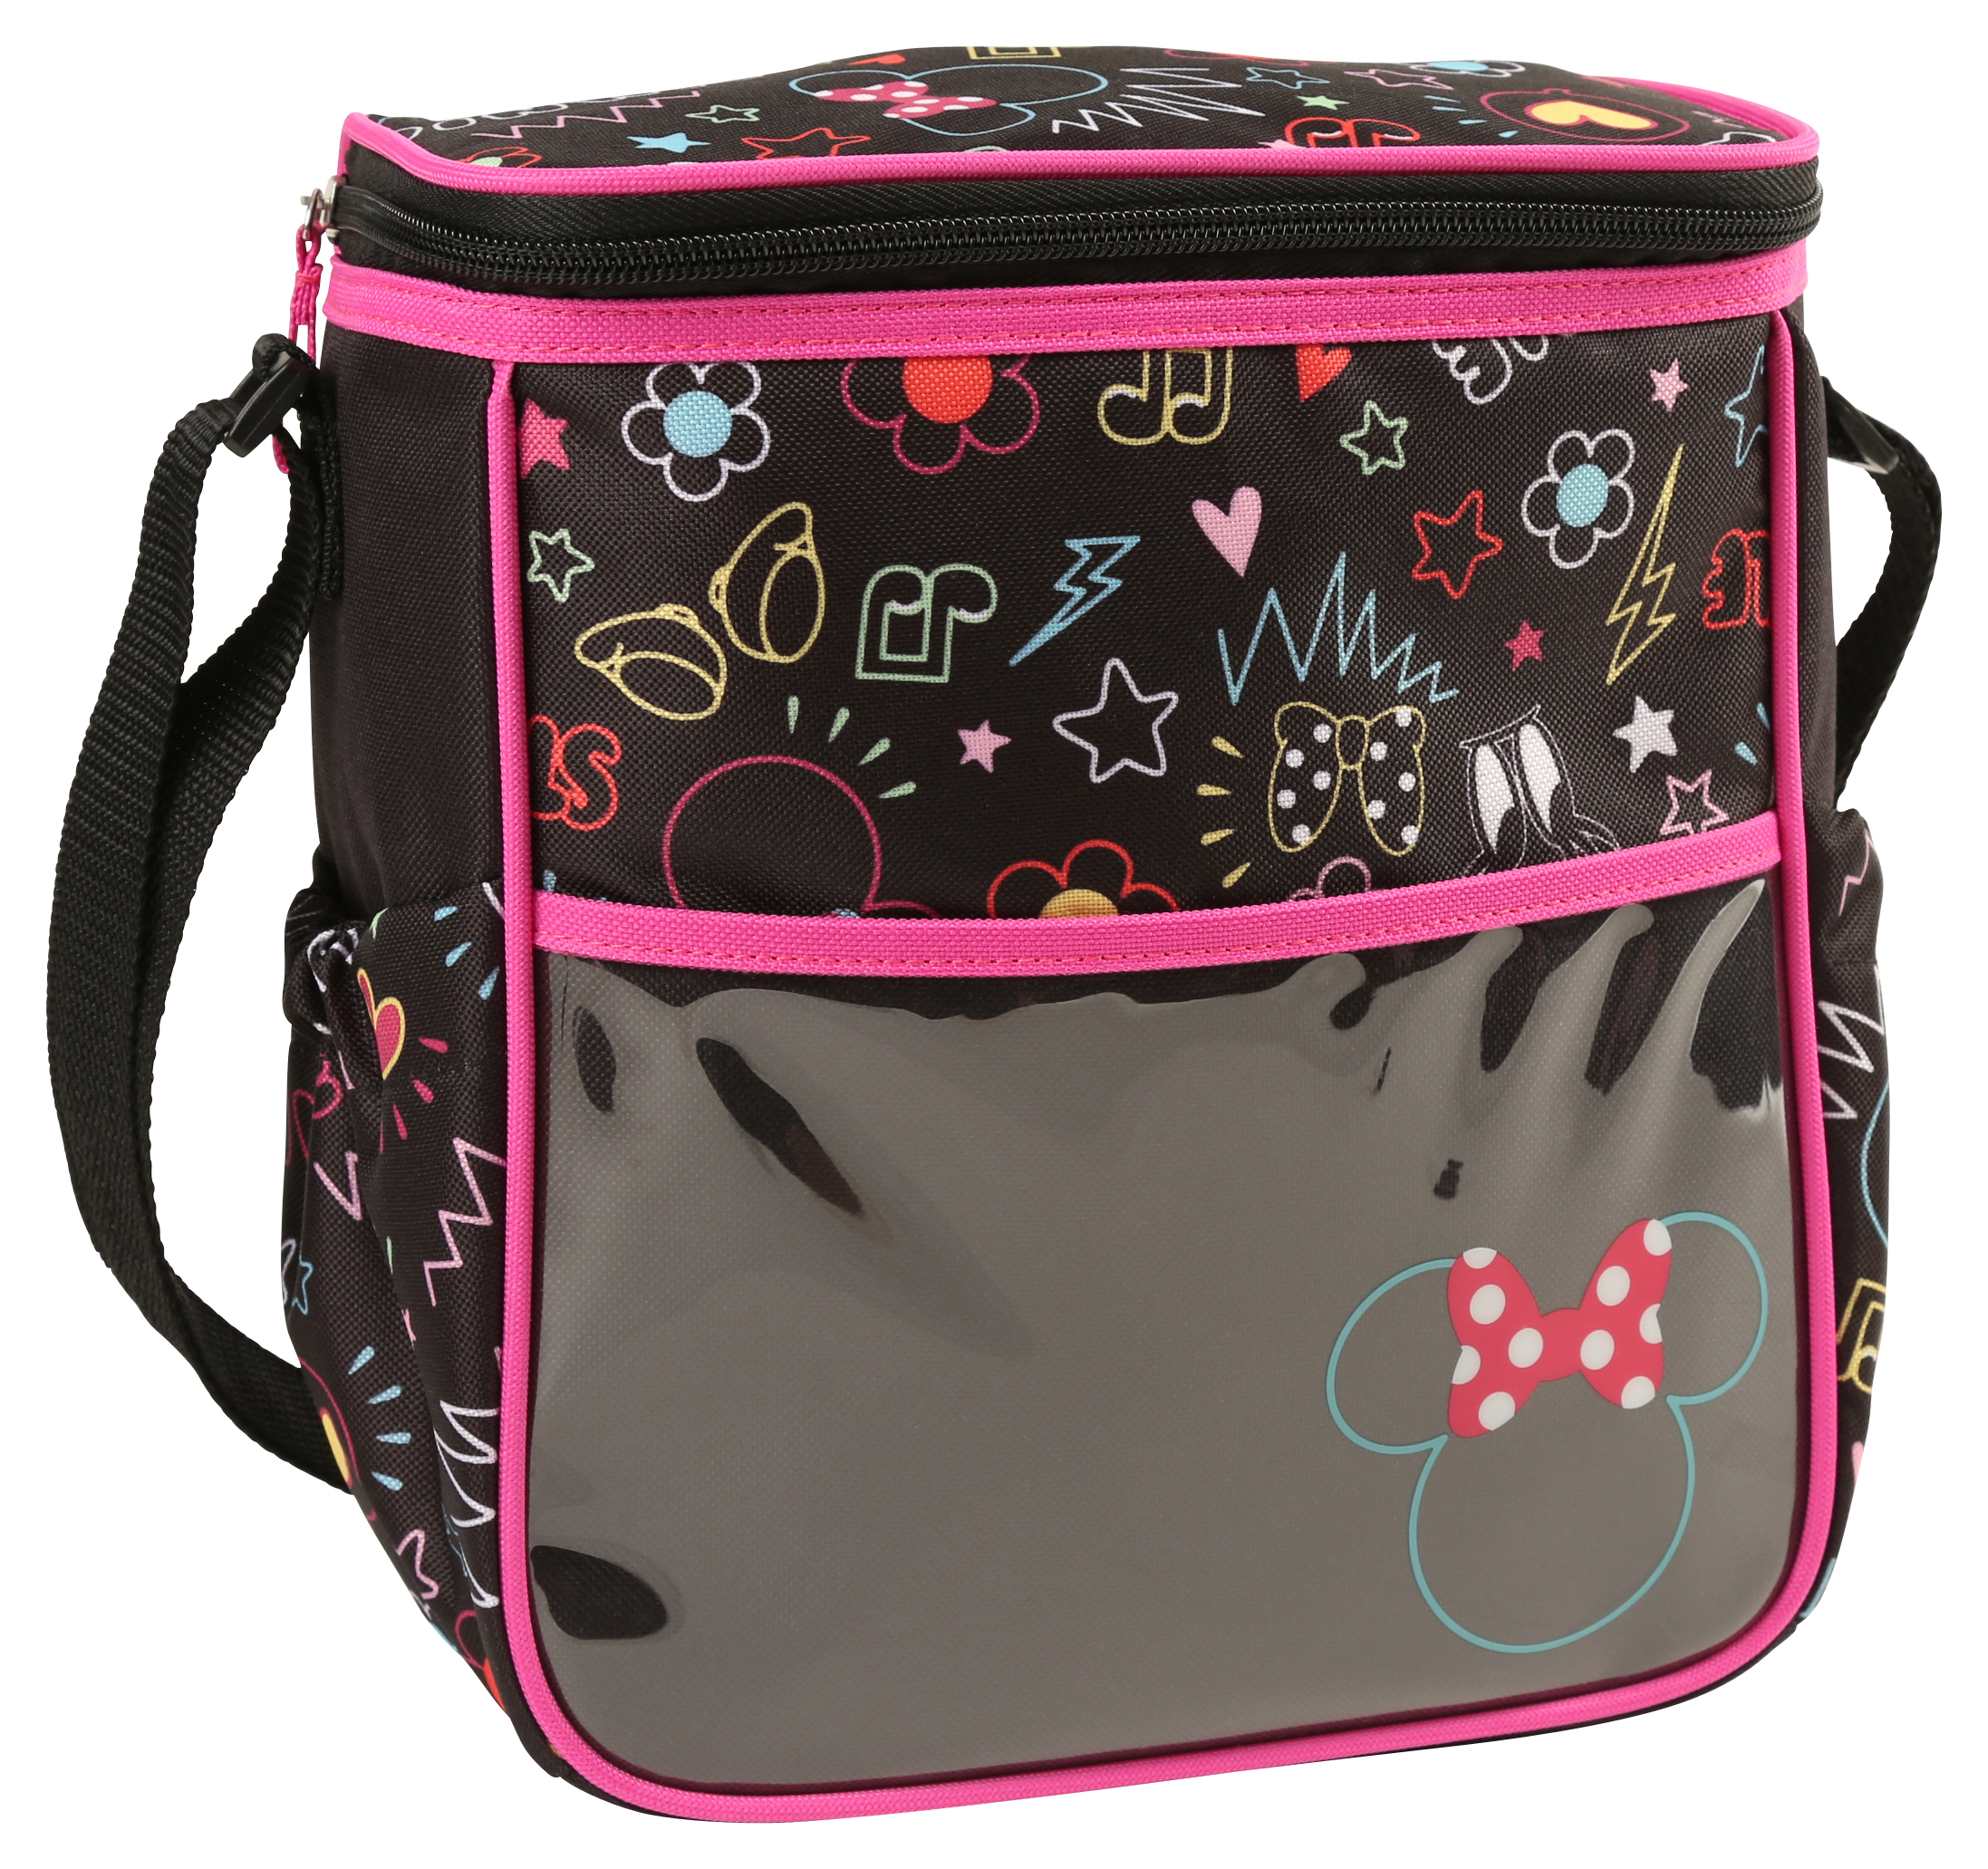 Disney Minnie Mouse Mini Diaper Bag, Graffiti